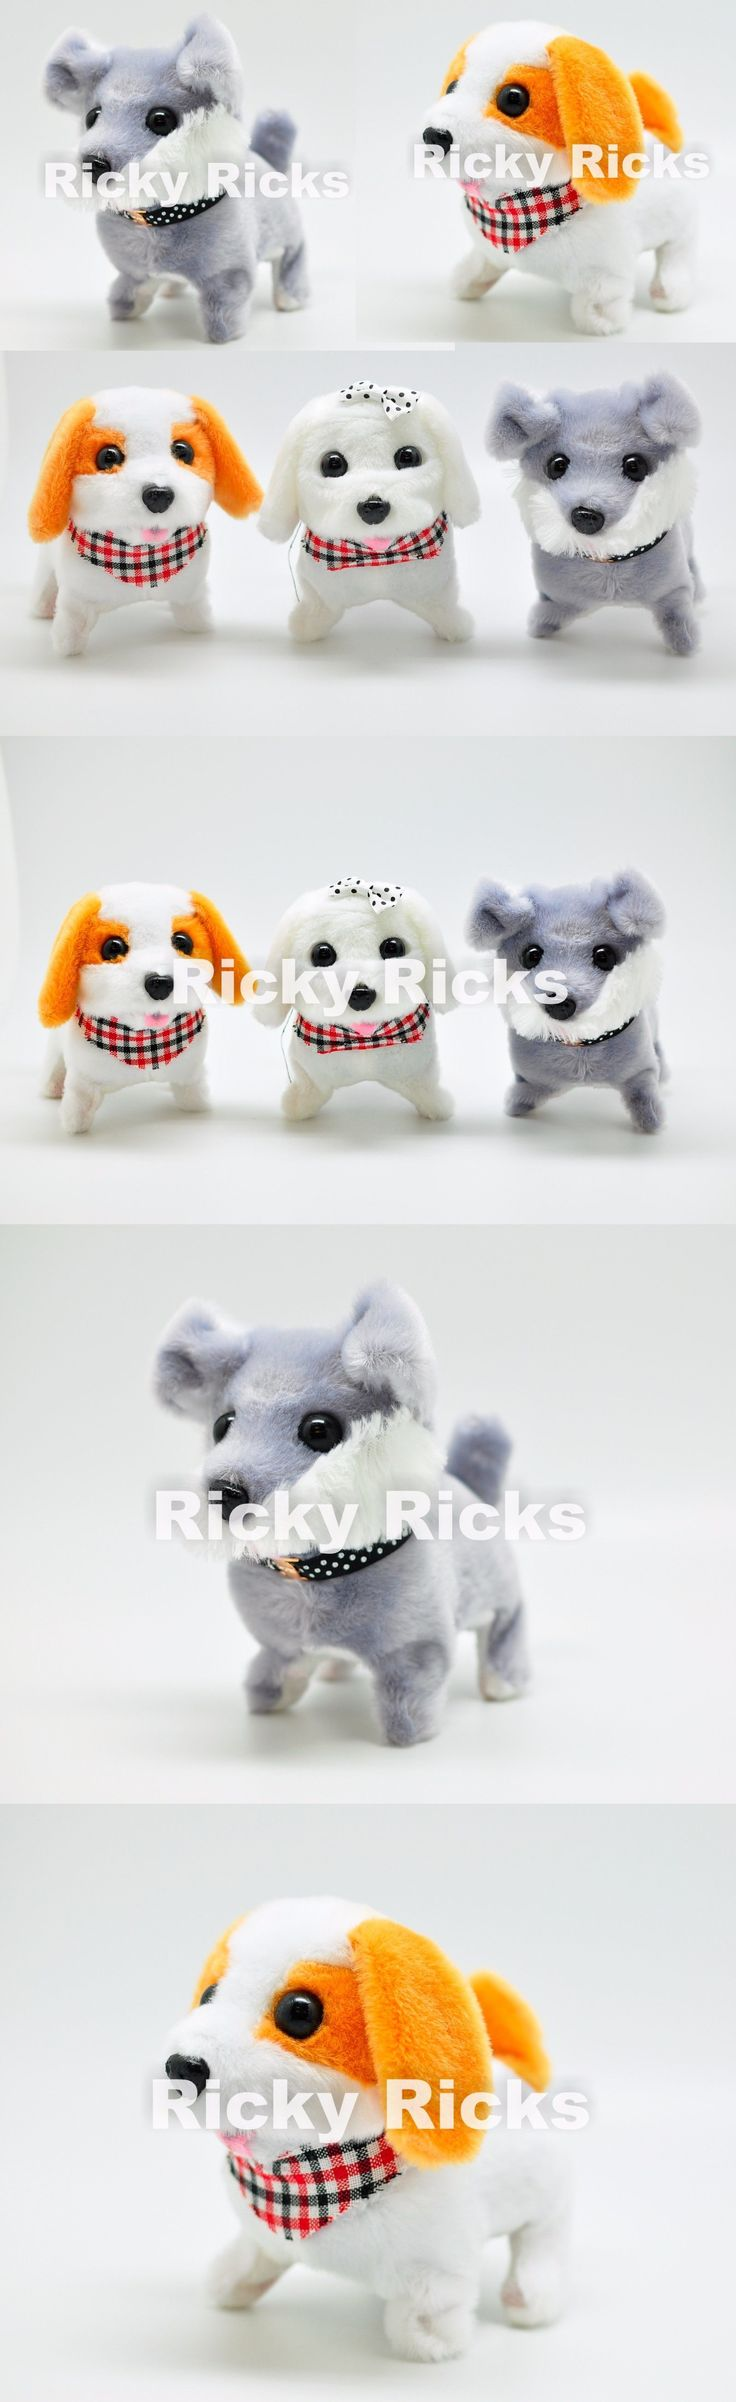 Animals 145942: 60 Walking Dogs Toy Barking Husky Beagle Puppies Furry Plush Wholesale -> BUY IT NOW ONLY: $149.99 on eBay!